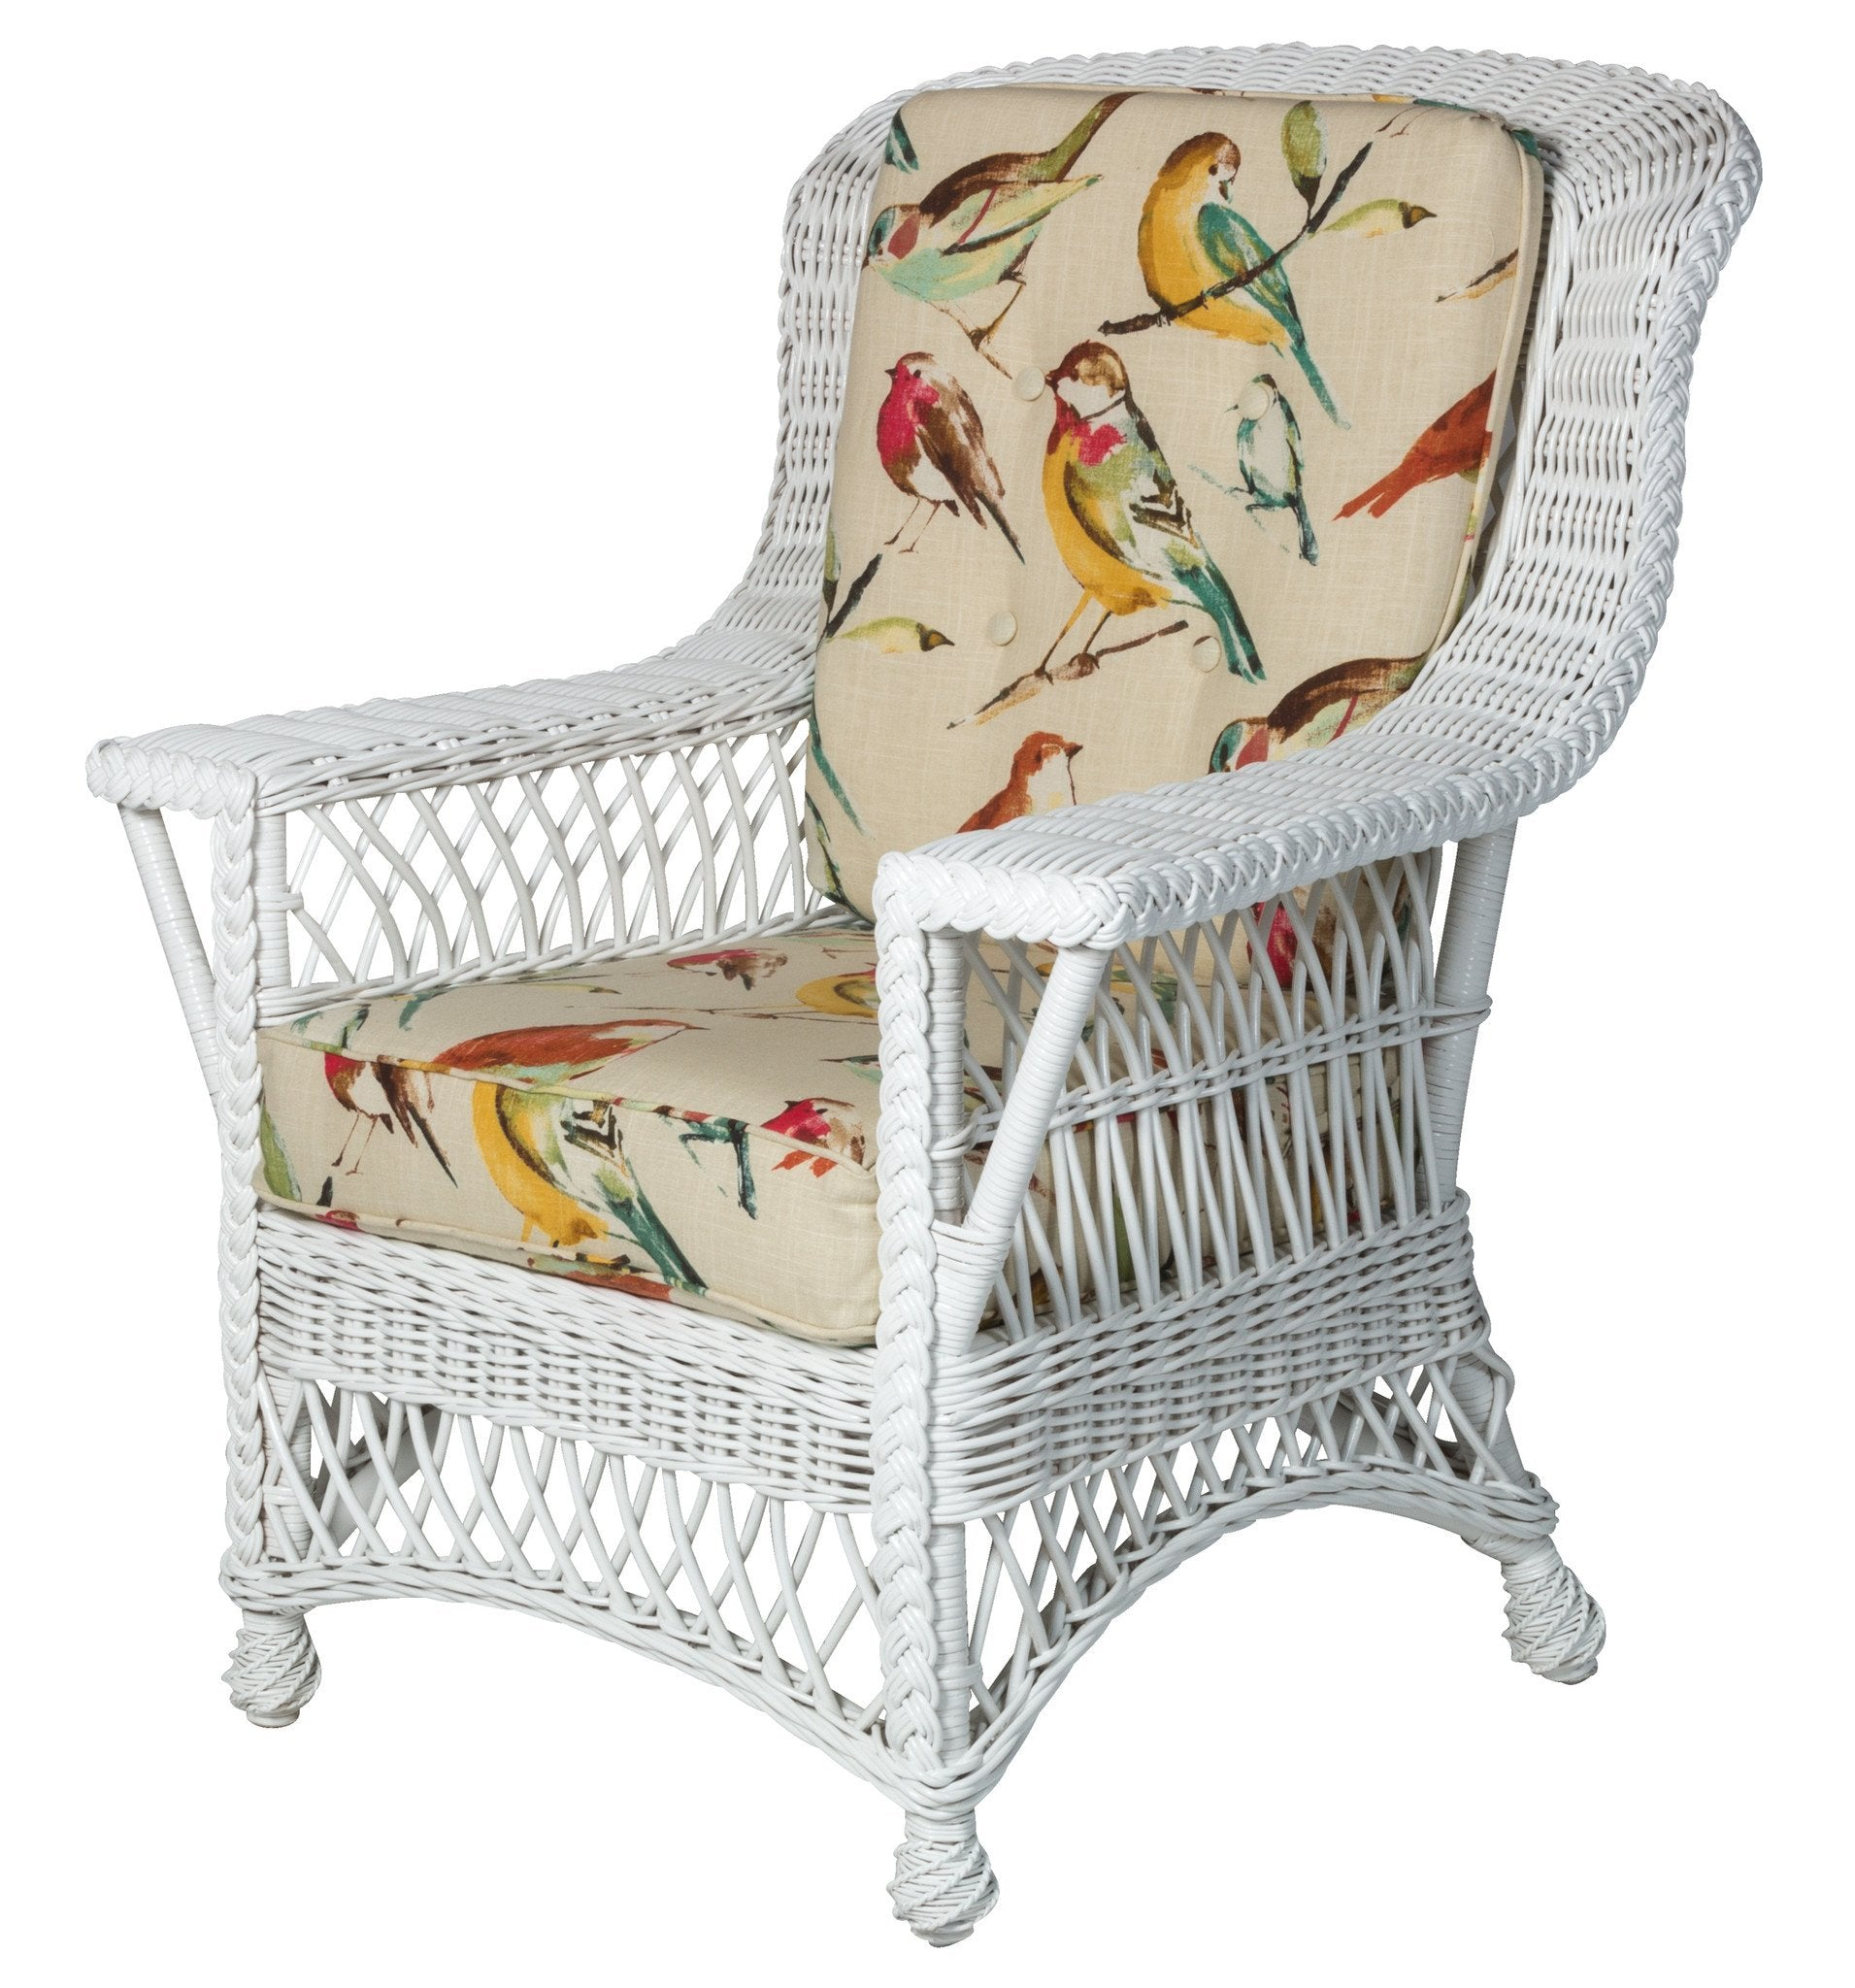 Designer Wicker & Rattan By Tribor Rockport Arm Chair (Rocker Size) by Designer Wicker from Tribor Chair - Rattan Imports